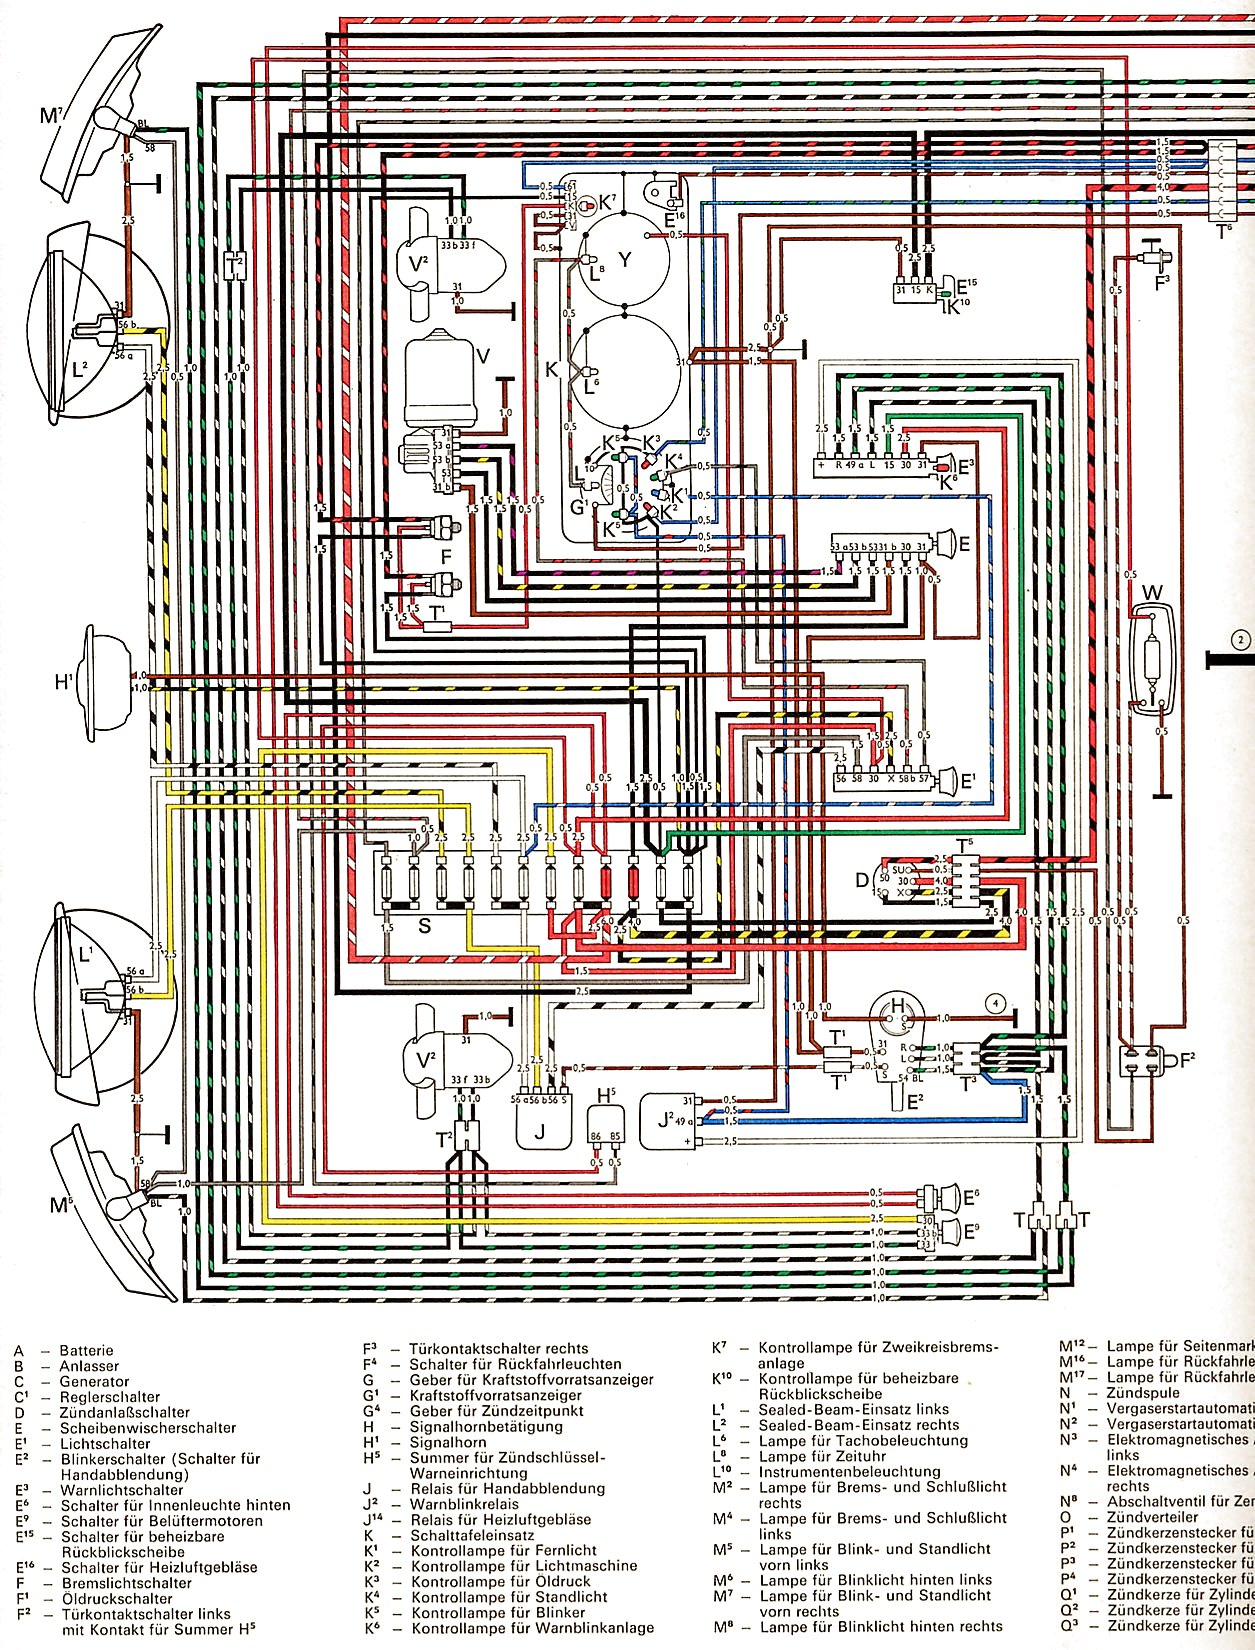 7E97AB7 Volkswagen Cooling Fan Wiring Diagram | Wiring Resources on cooling fan starter, cooling fan clutch, cooling fan radiator, cooling fan harness diagram, cooling fan relay, cooling fan tools, cooling fan heater, cooling system, 3 position light switch diagram, cooling fan repair, cooling fan connector, engine diagram, cooling fan circuit breaker, cooling fan assembly, 1997 honda civic cooling fan diagram, cooling fan thermostat, cooling fan controls, cooling fan coil, ac motor speed control circuit diagram, cooling tower diagram,